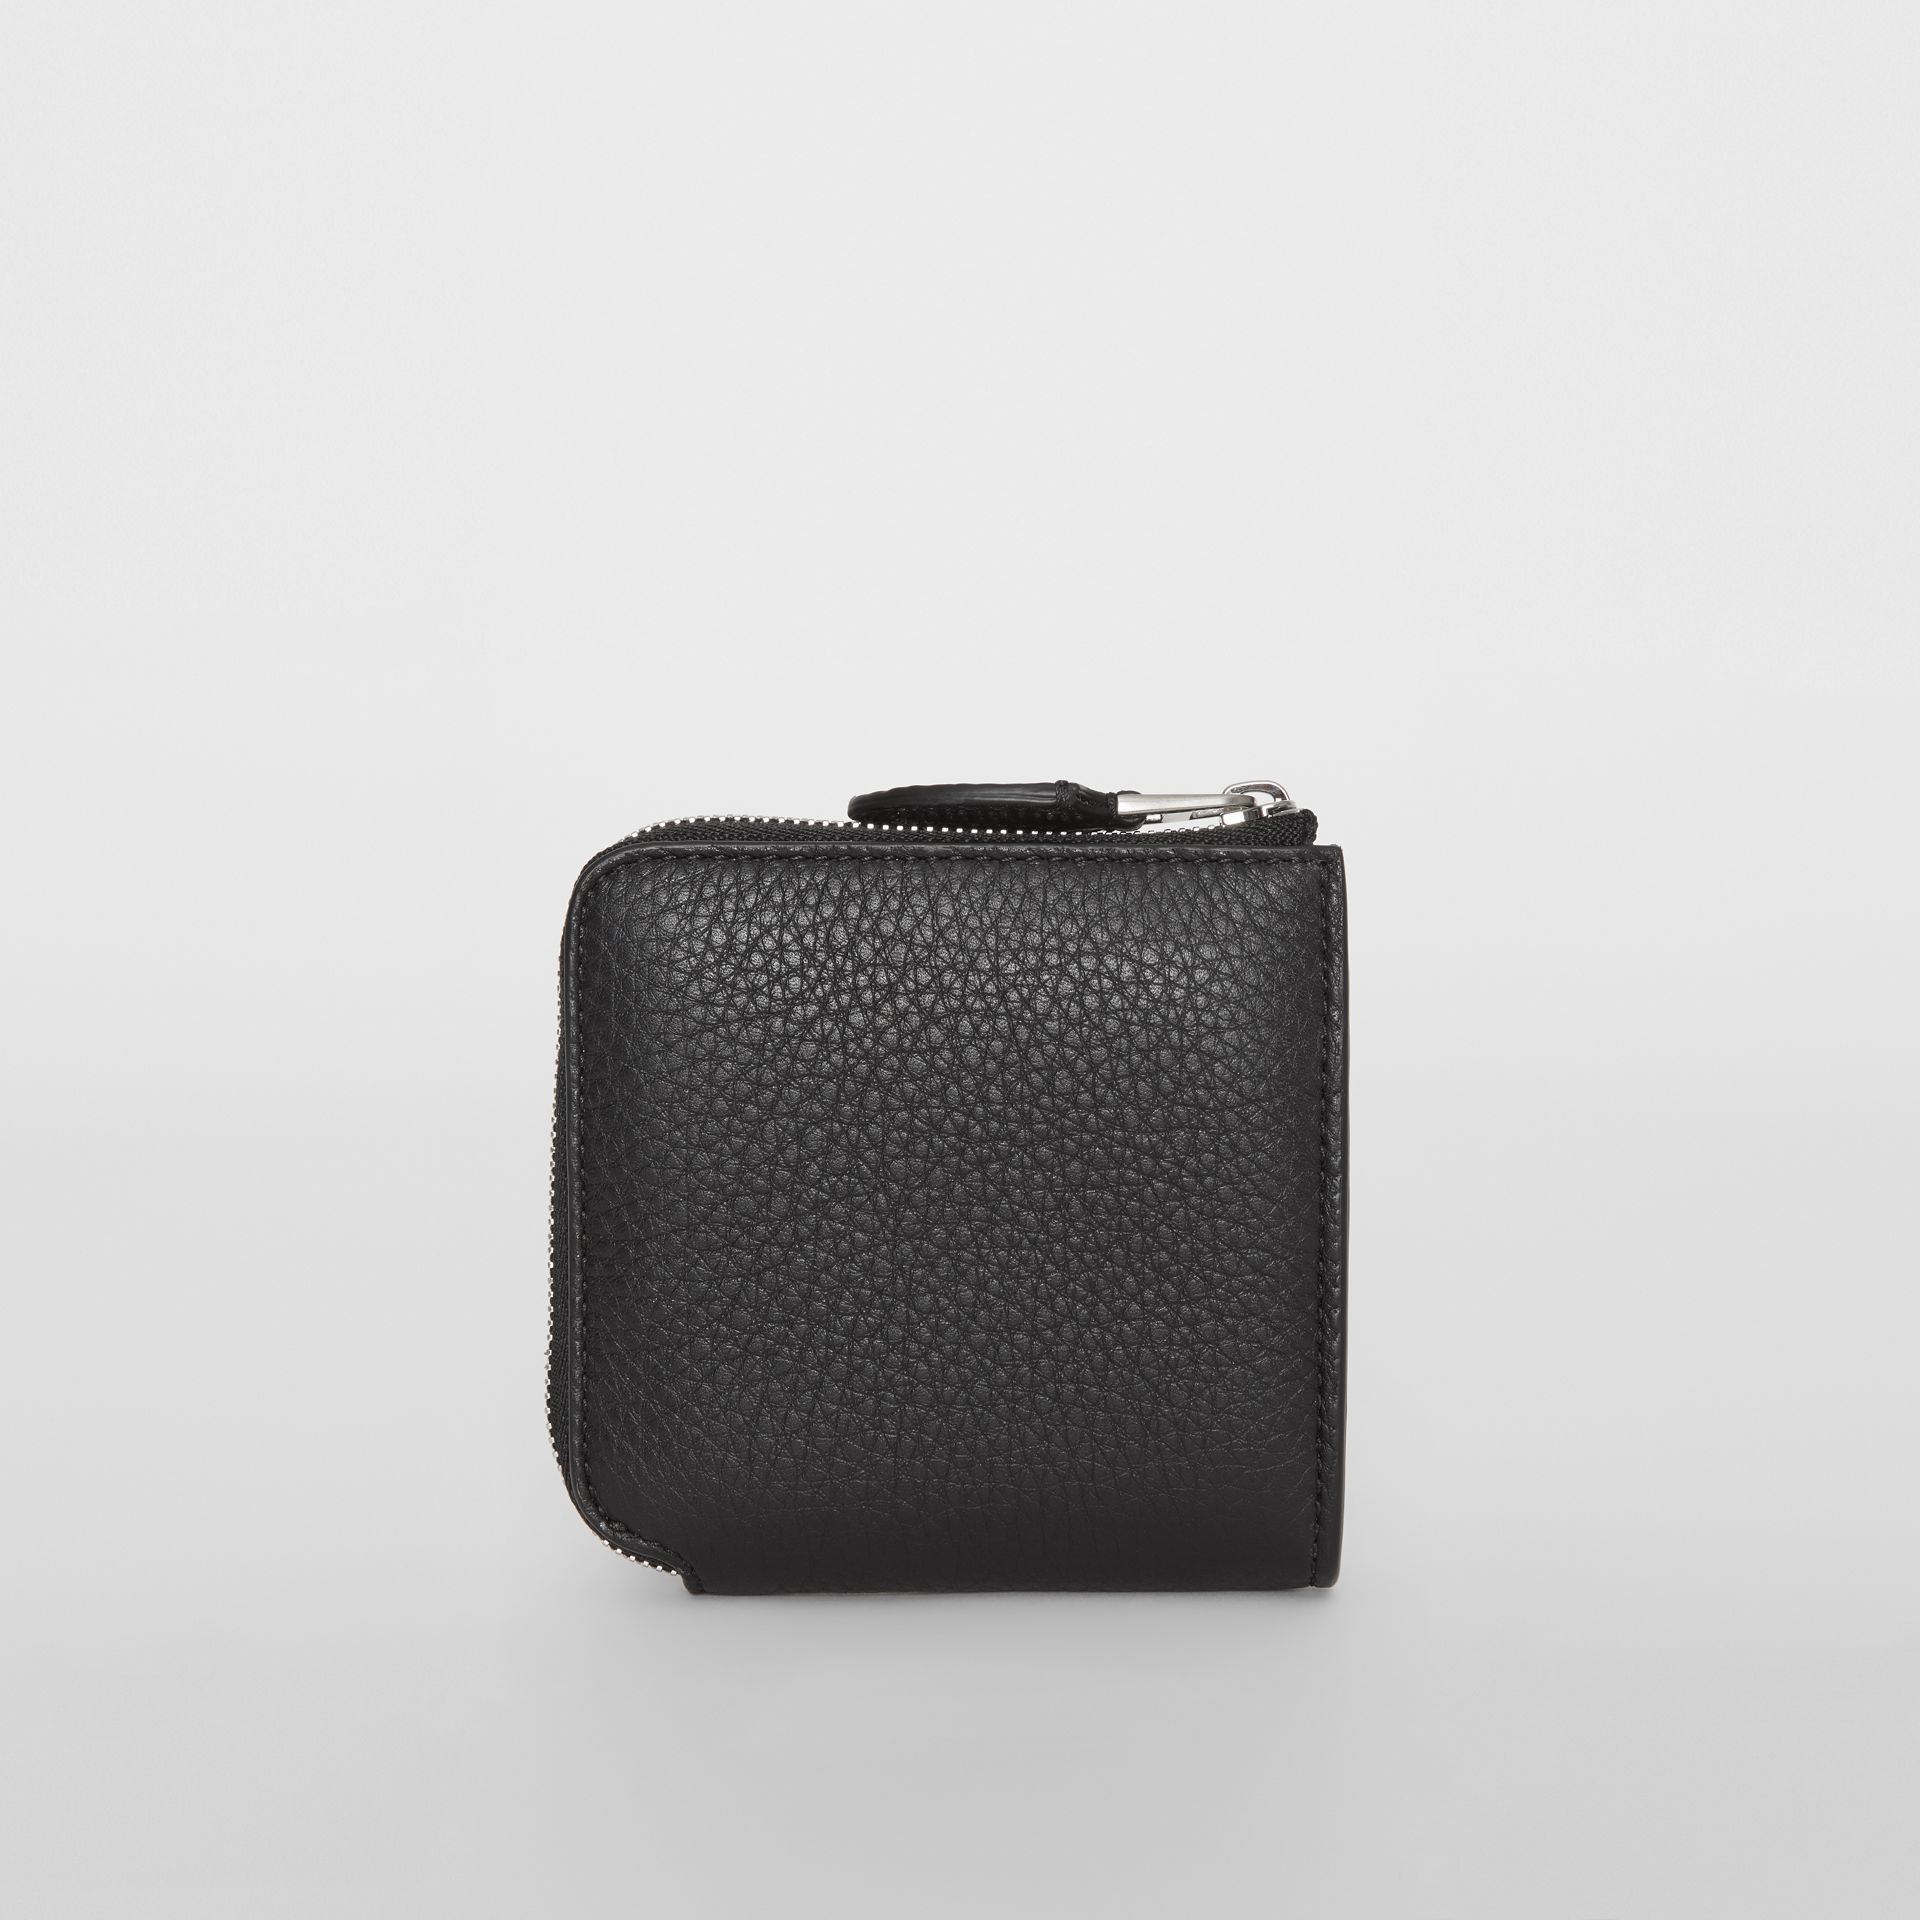 Grainy Leather Square Ziparound Wallet in Black - Women | Burberry Hong Kong - gallery image 6